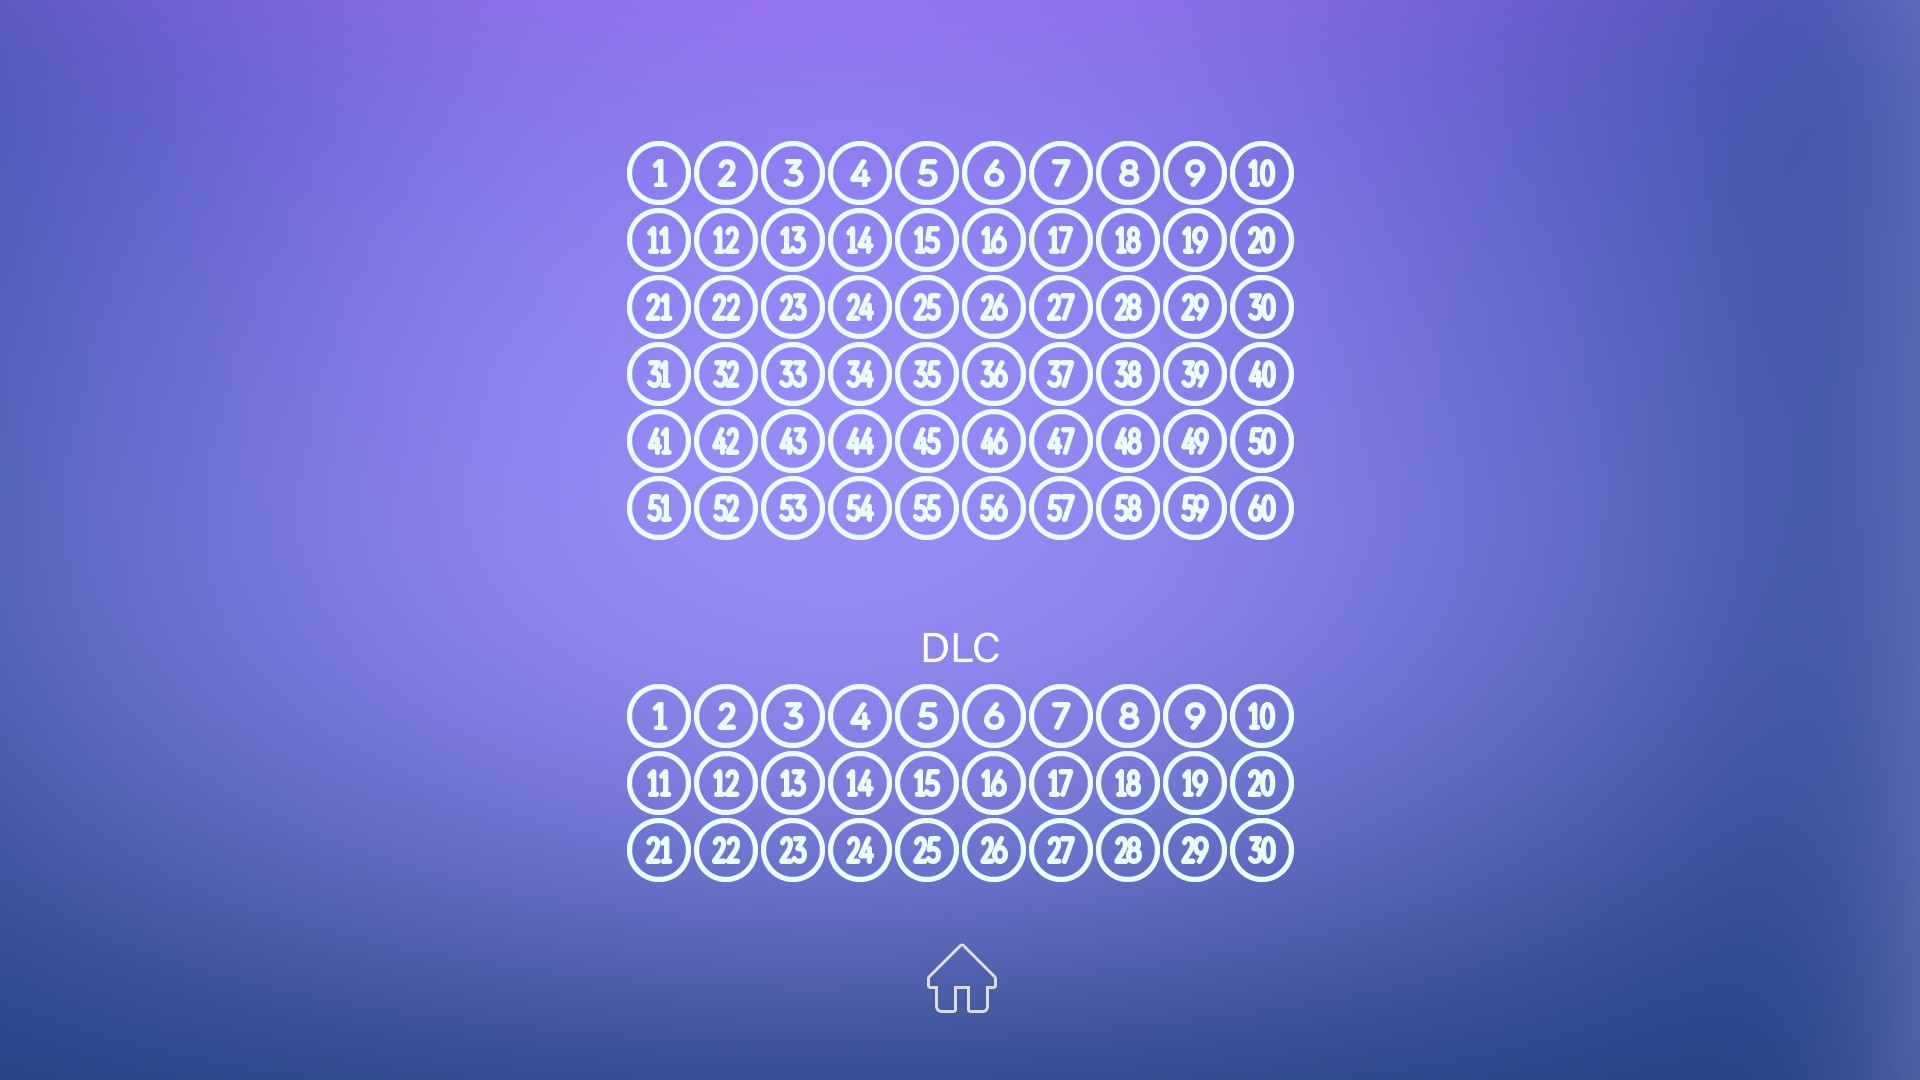 Level select screen with 90 levels available.